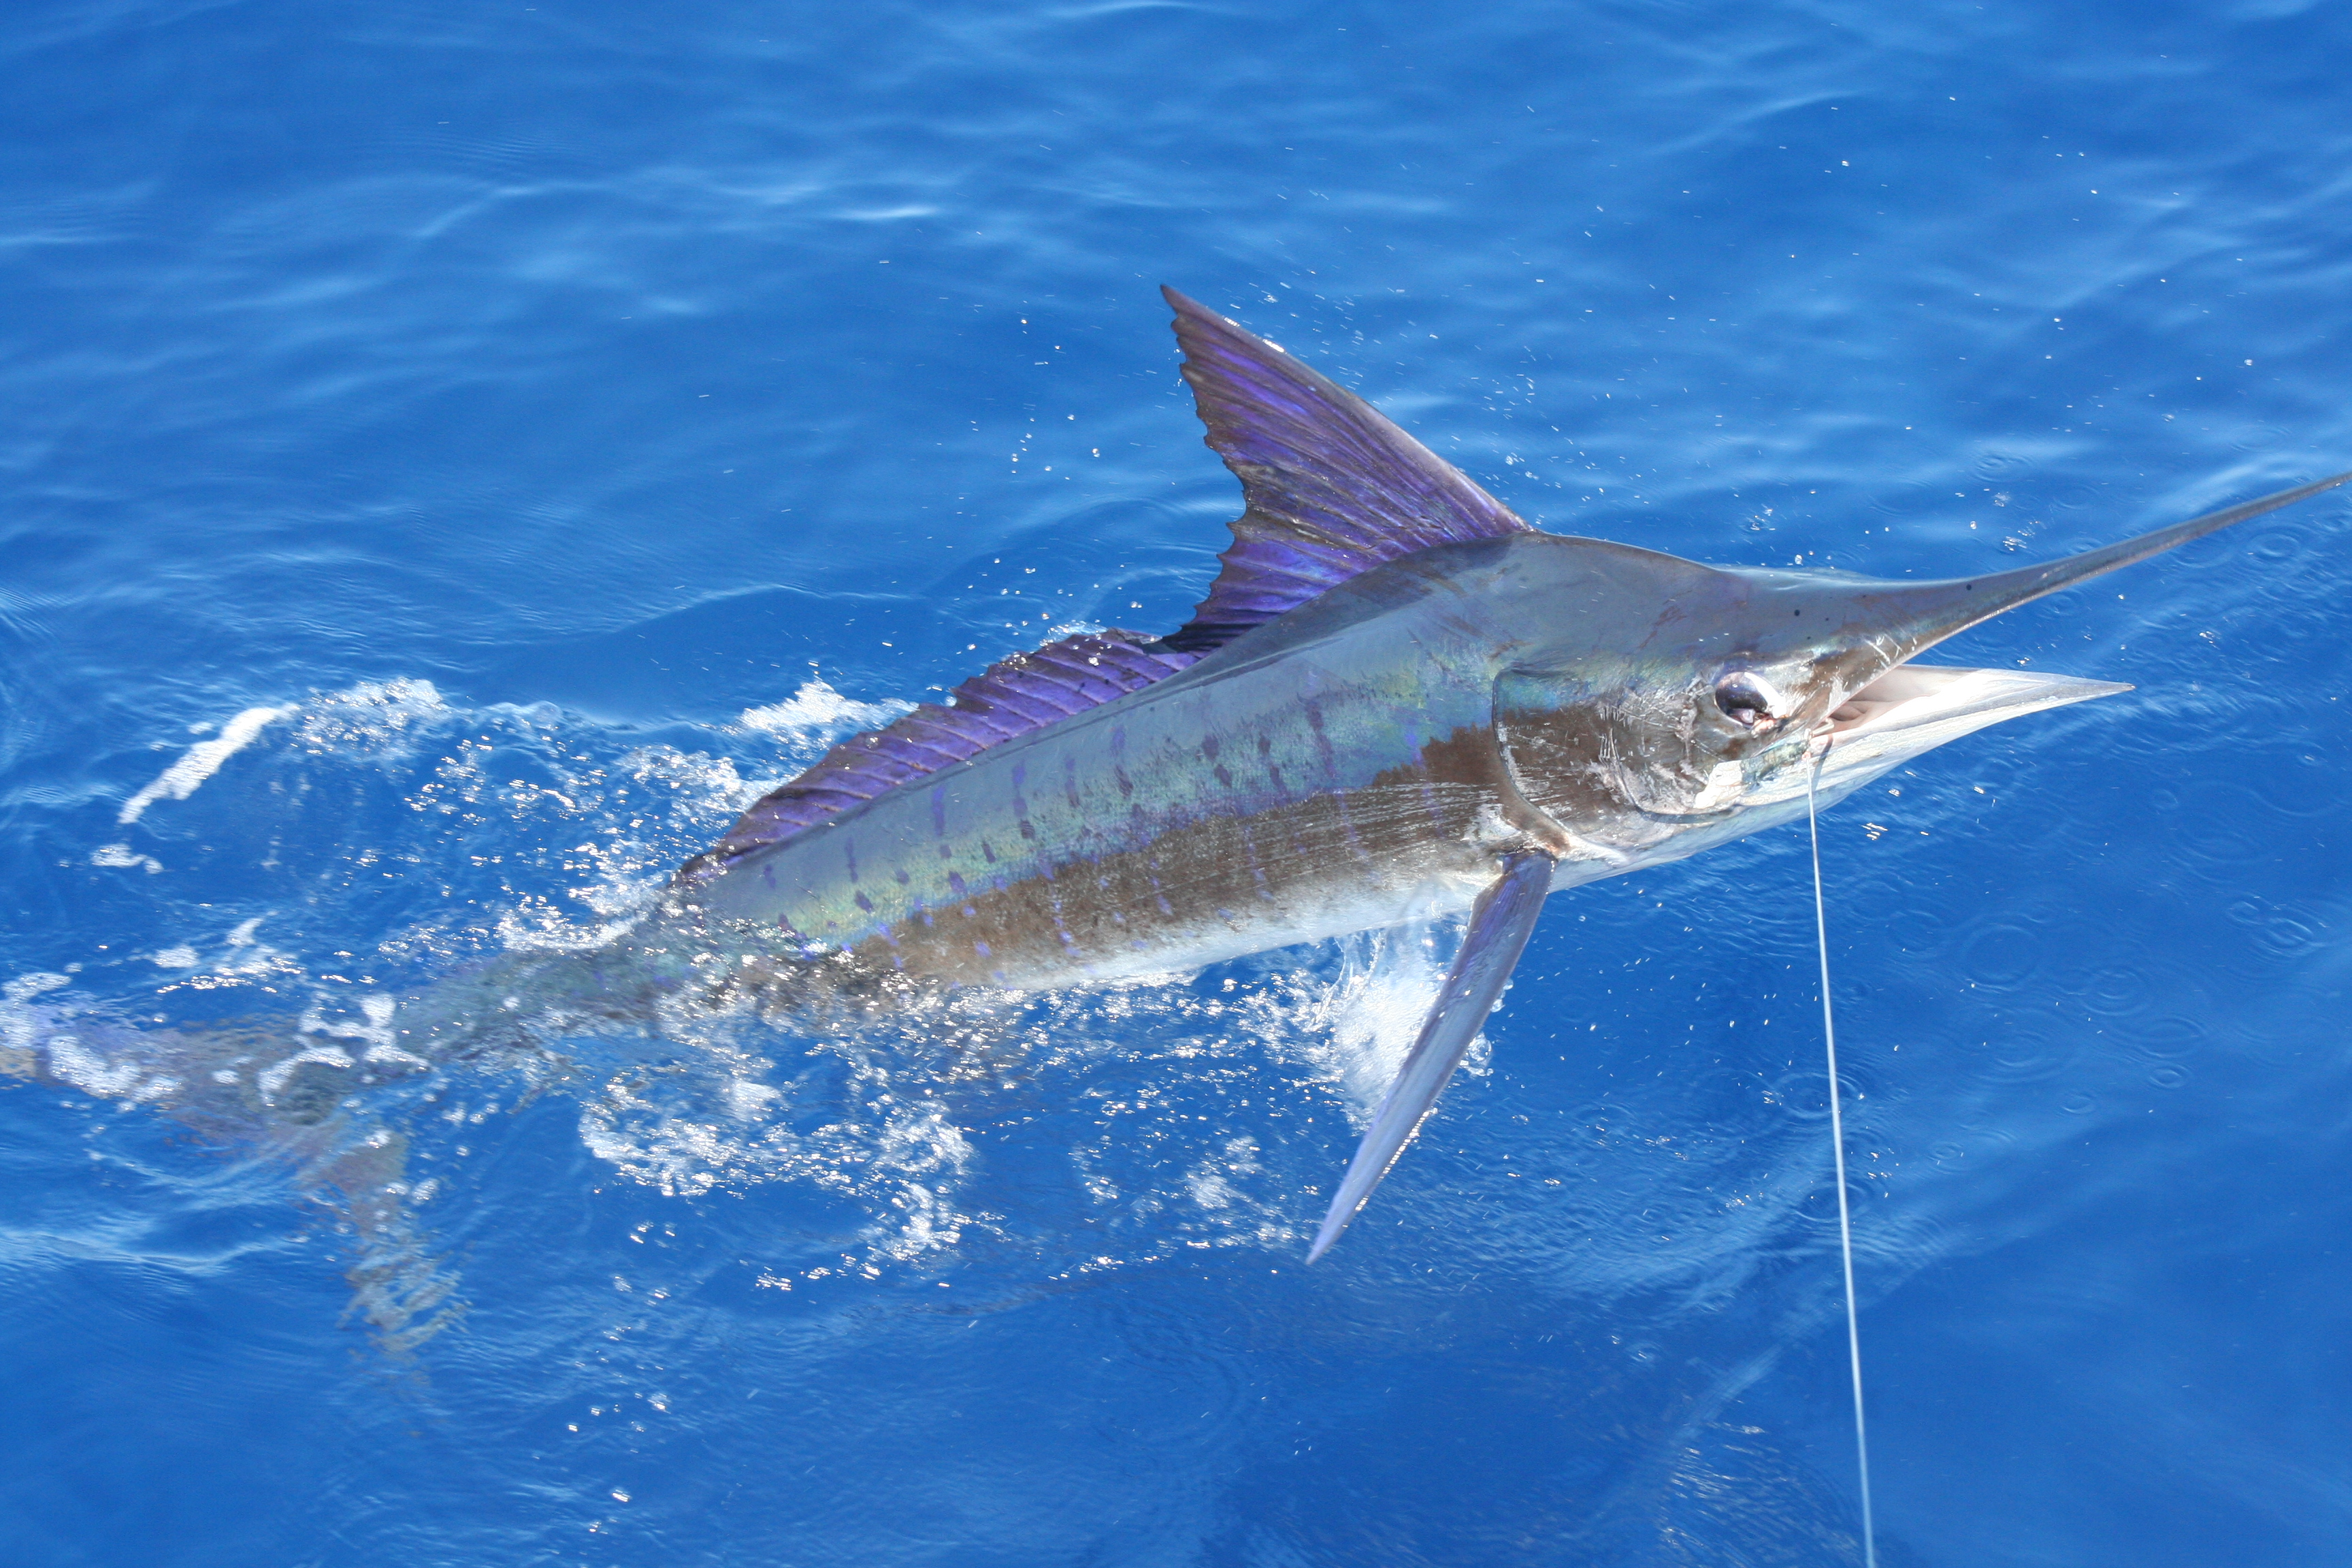 A Marlin caught by two guys in fishing tackle t shirts